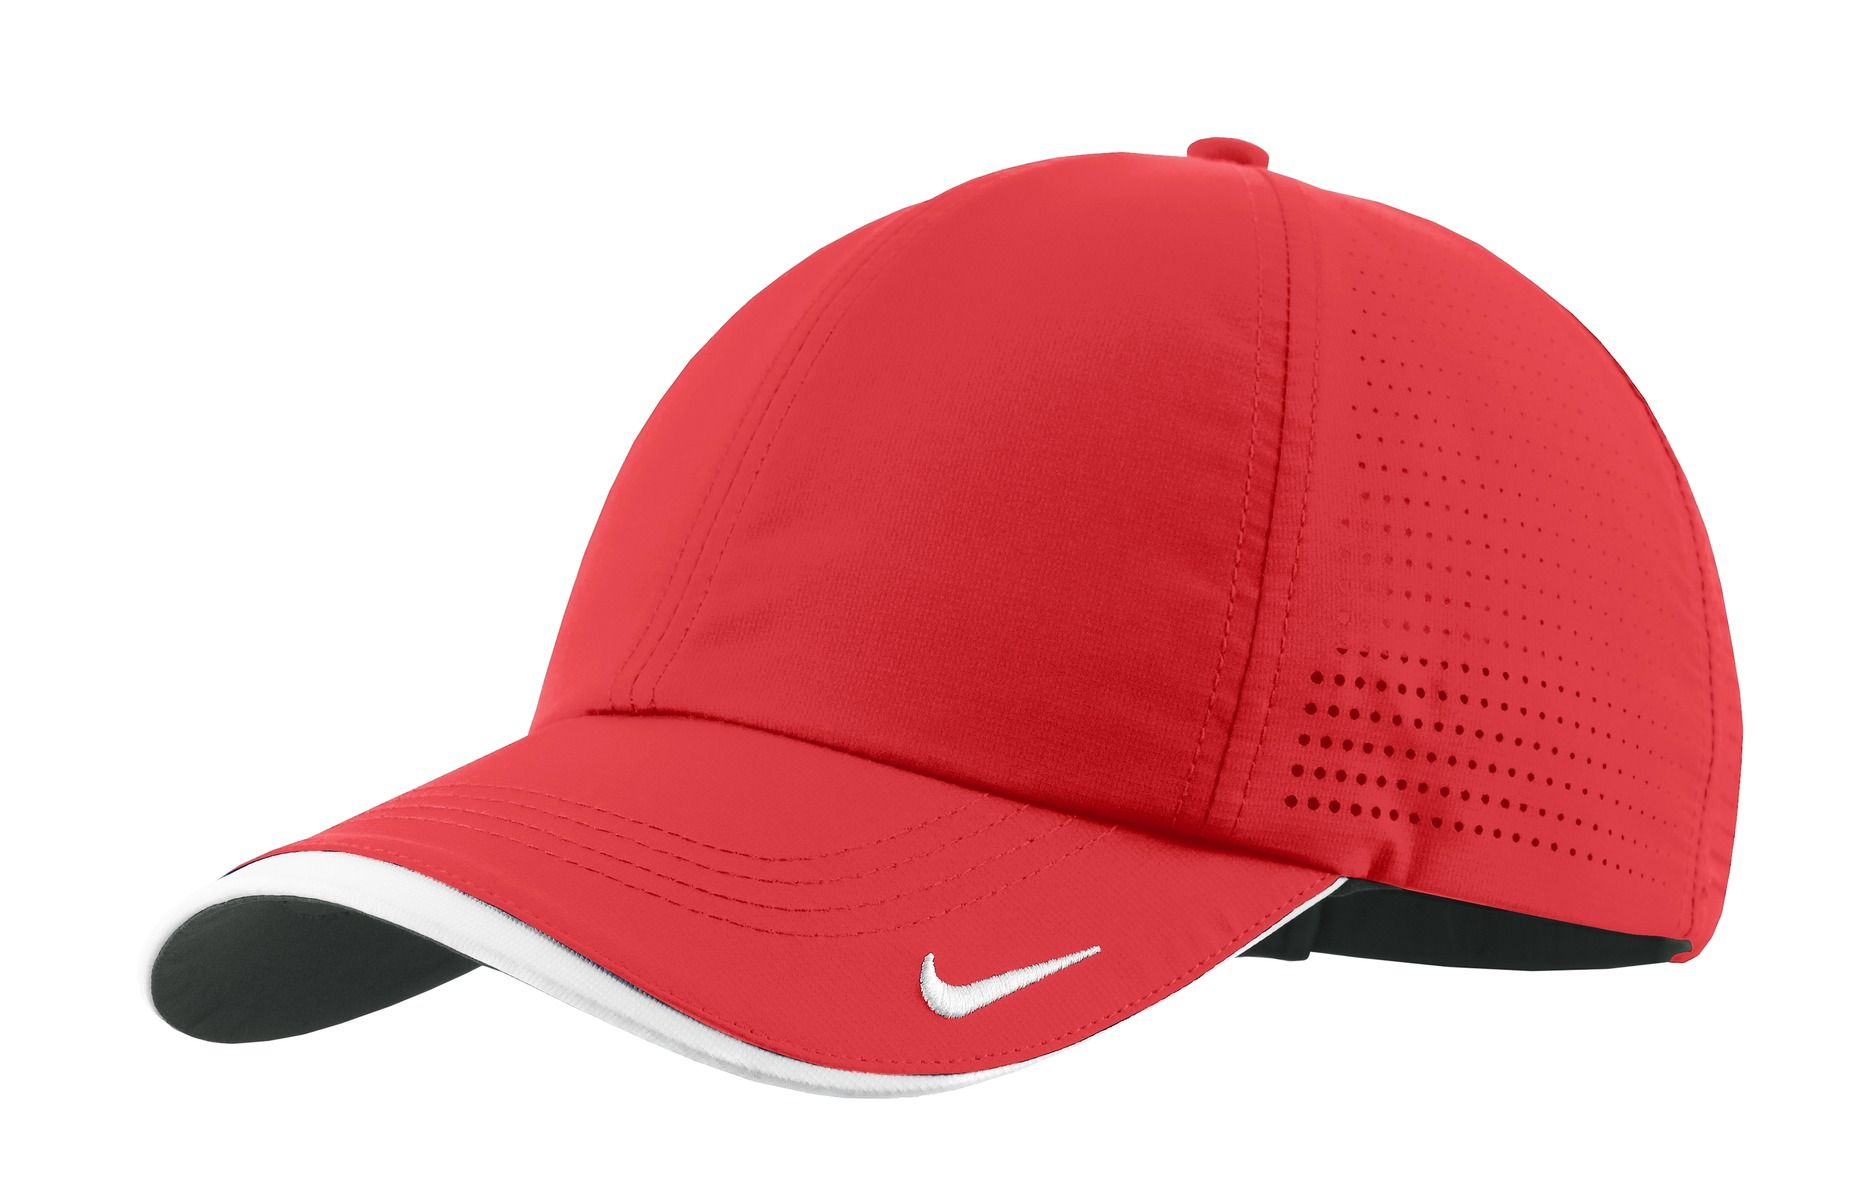 991d3943f89 429467 Nike Golf - Dri-FIT Swoosh Perforated Cap